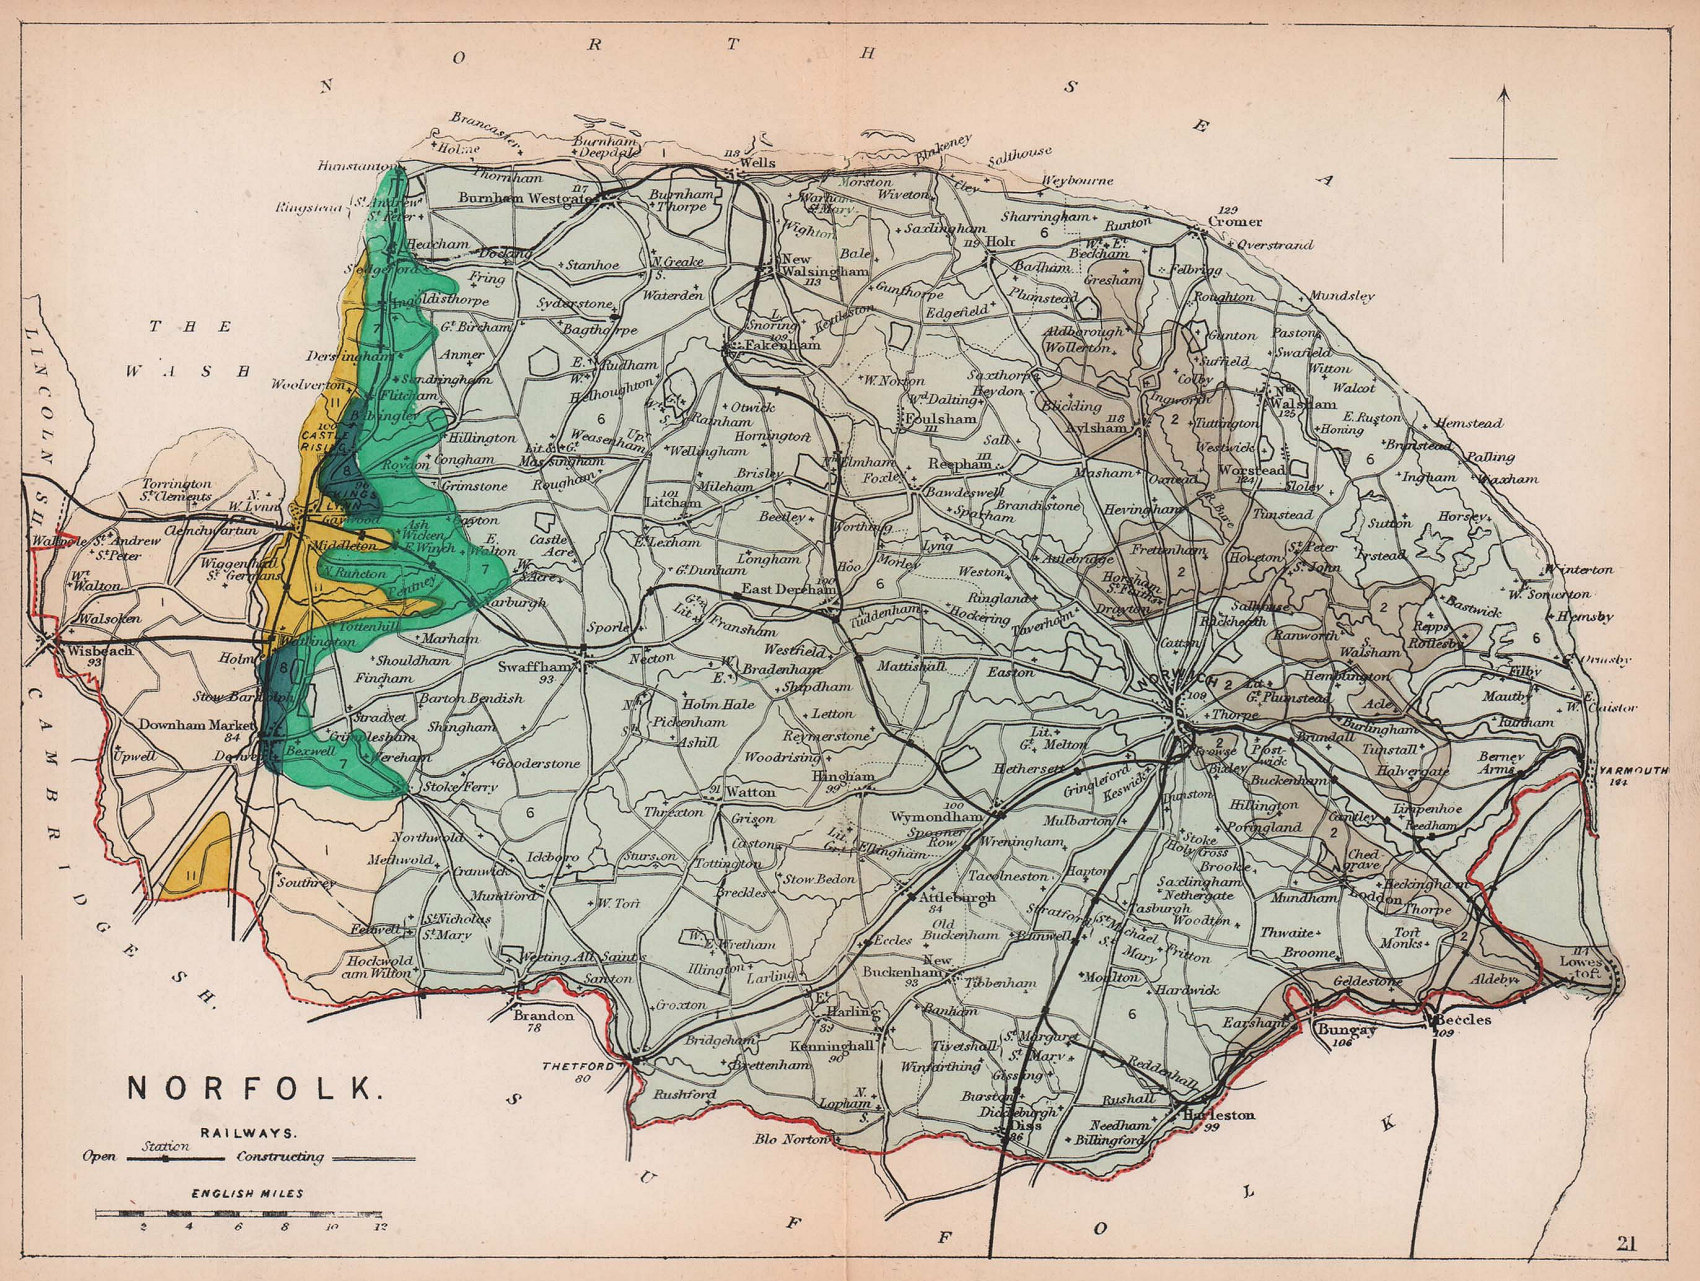 NORFOLK antique geological county map by James Reynolds 1864